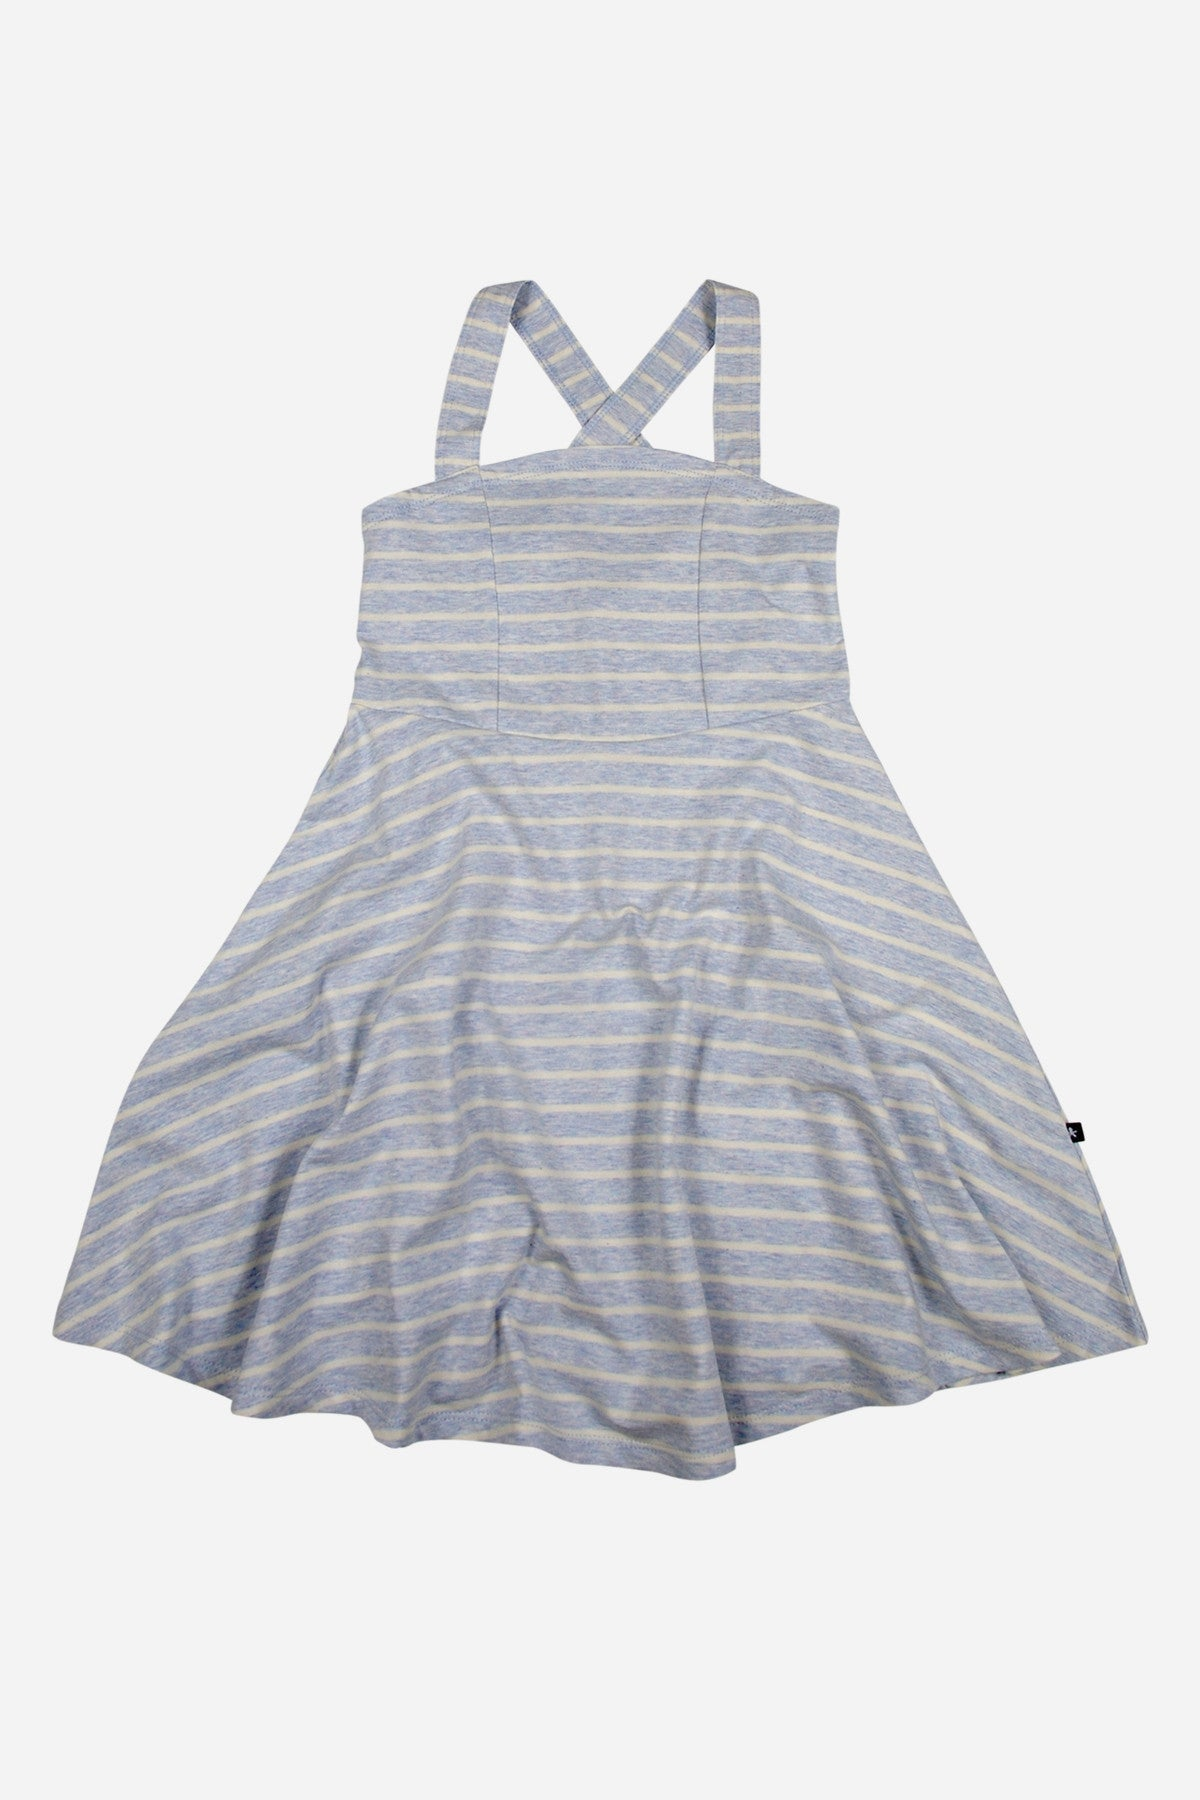 94ecb7fec0 Toobydoo Skater Girls Dress